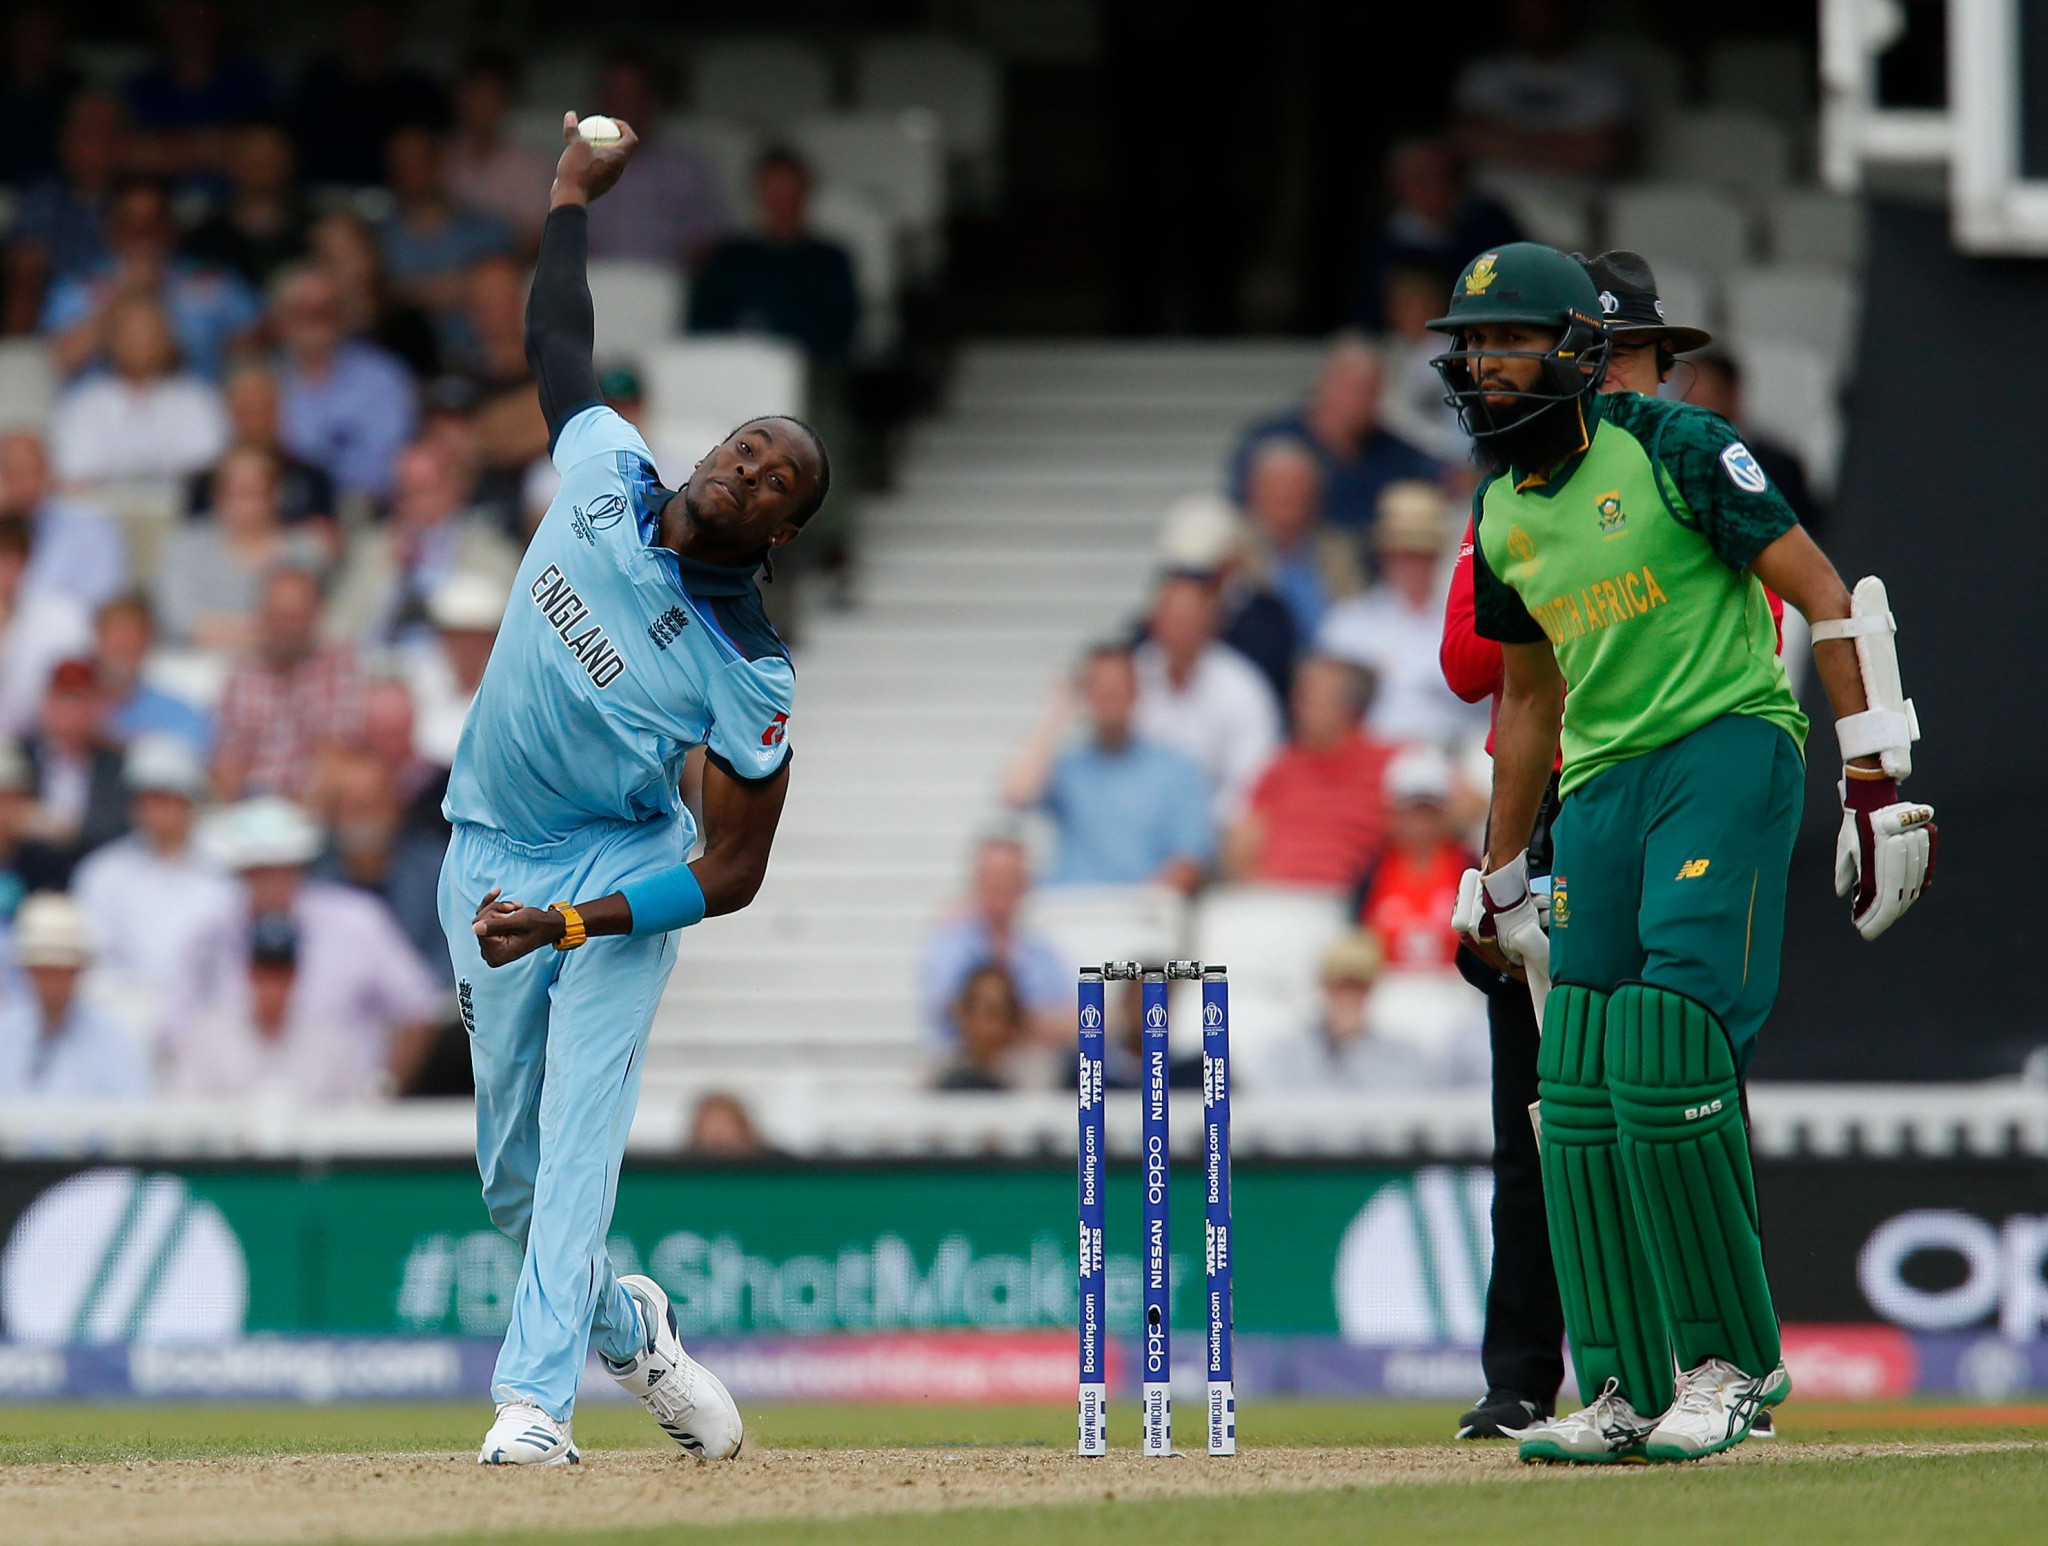 England defeat South Africa in ICC Cricket World Cup opener